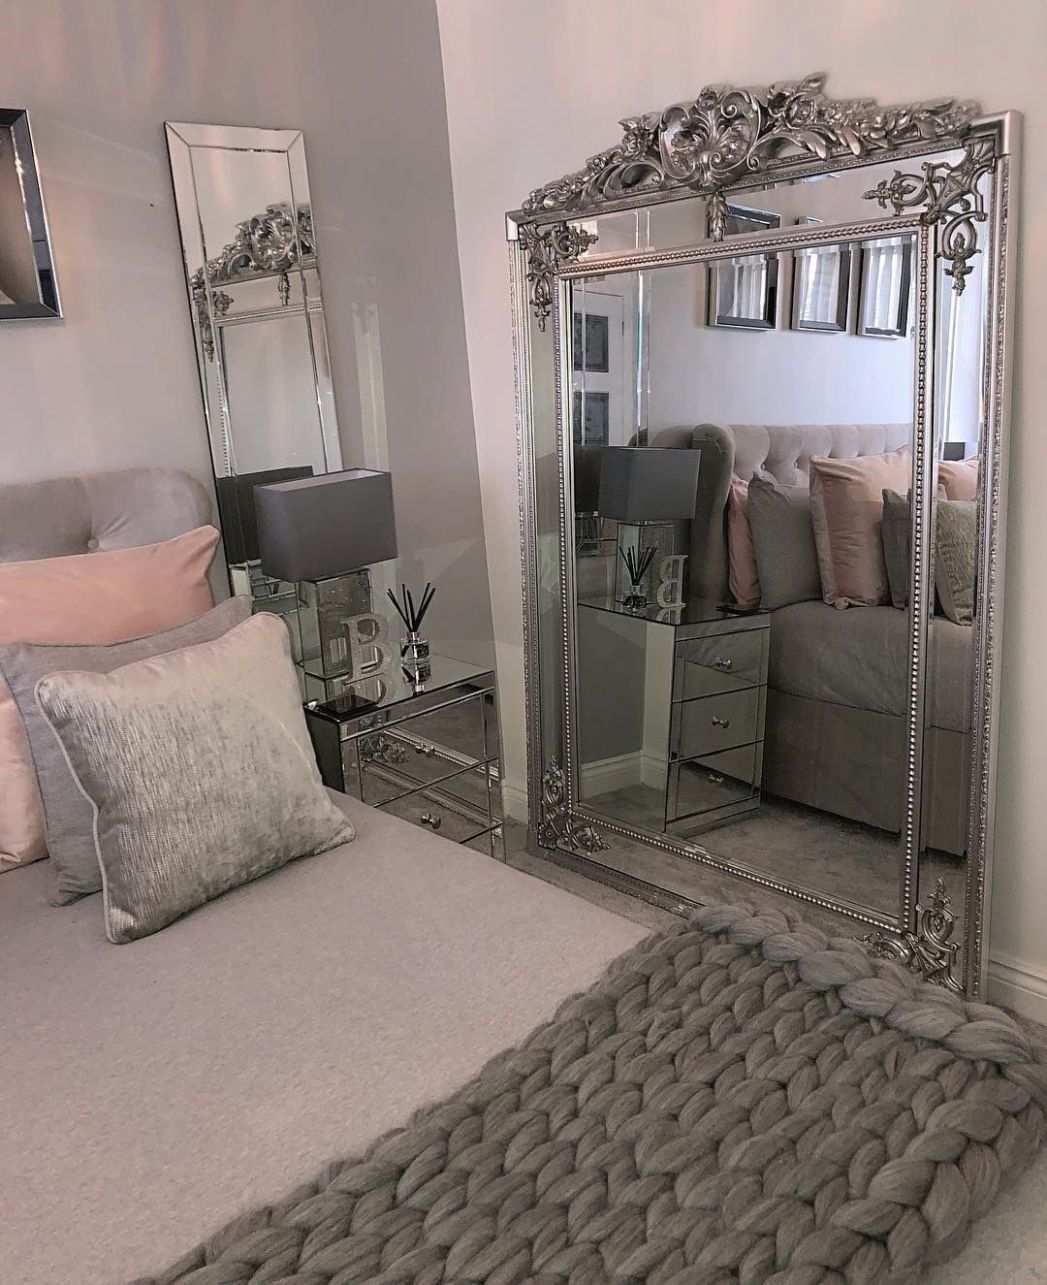 pinterest: @ nandeezy † (With images) | Home decor, Home, Bedroom ..